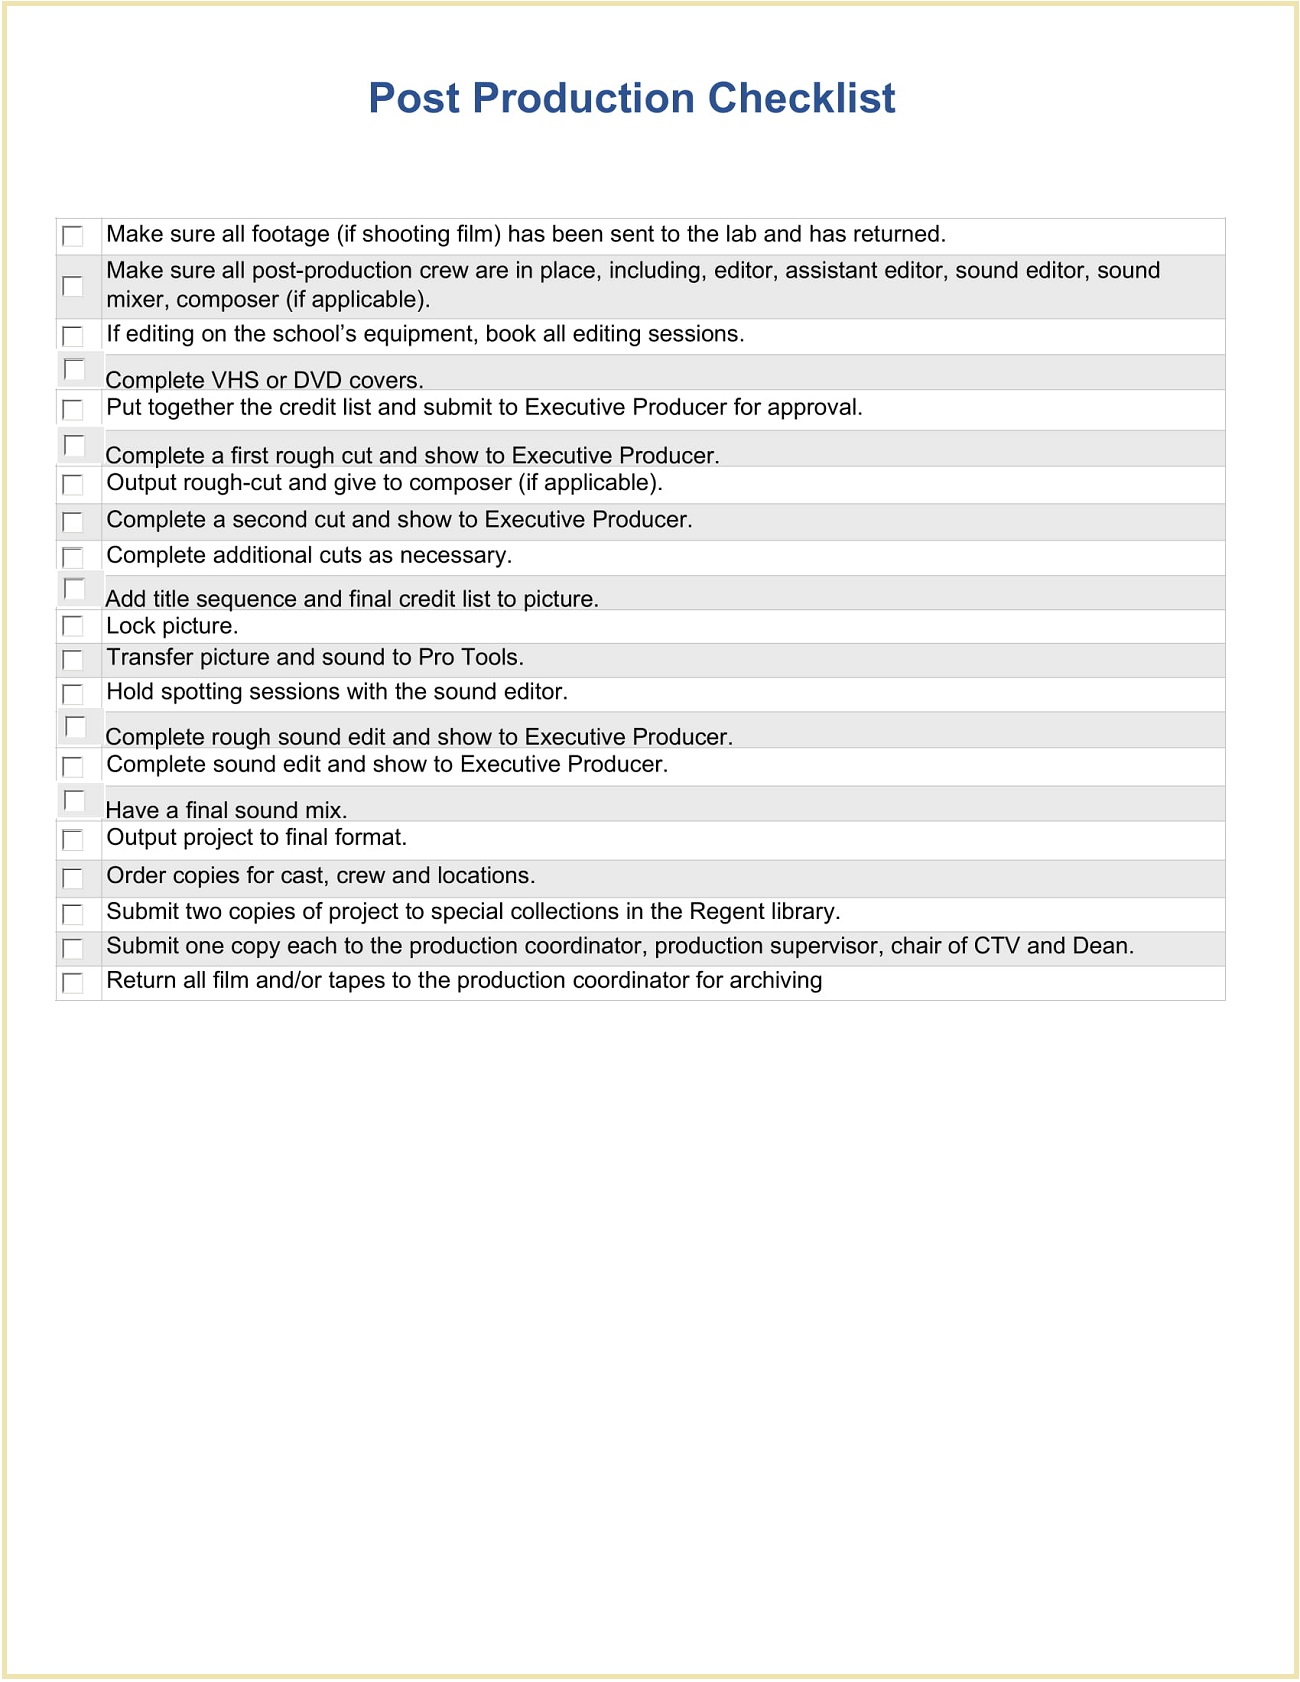 Post Production Checklist Form Sample Template Word